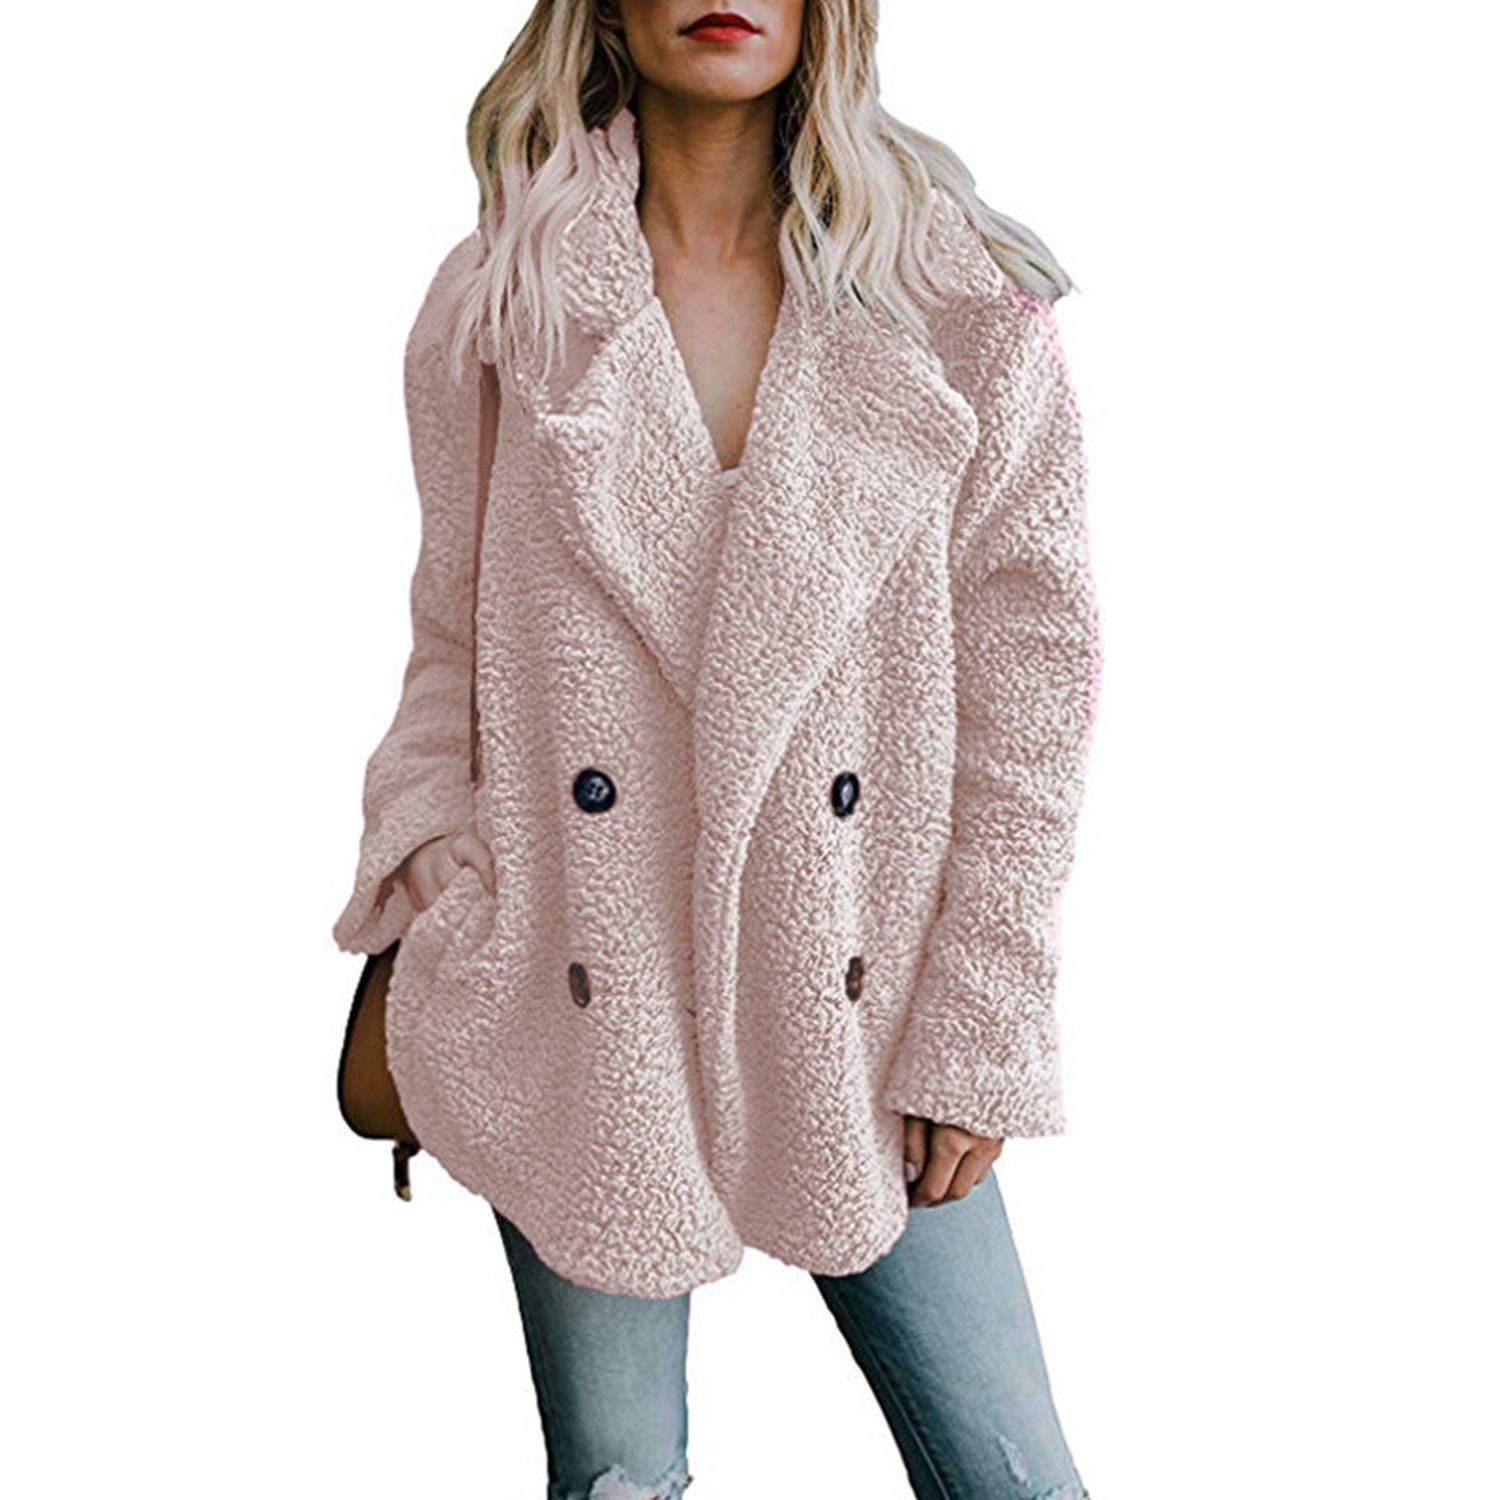 Wool Winter Coat Women Wide Lapel Loose Warm Outwear Female Casual JumperLadies Blend Coat Love essentials Ladys Coat